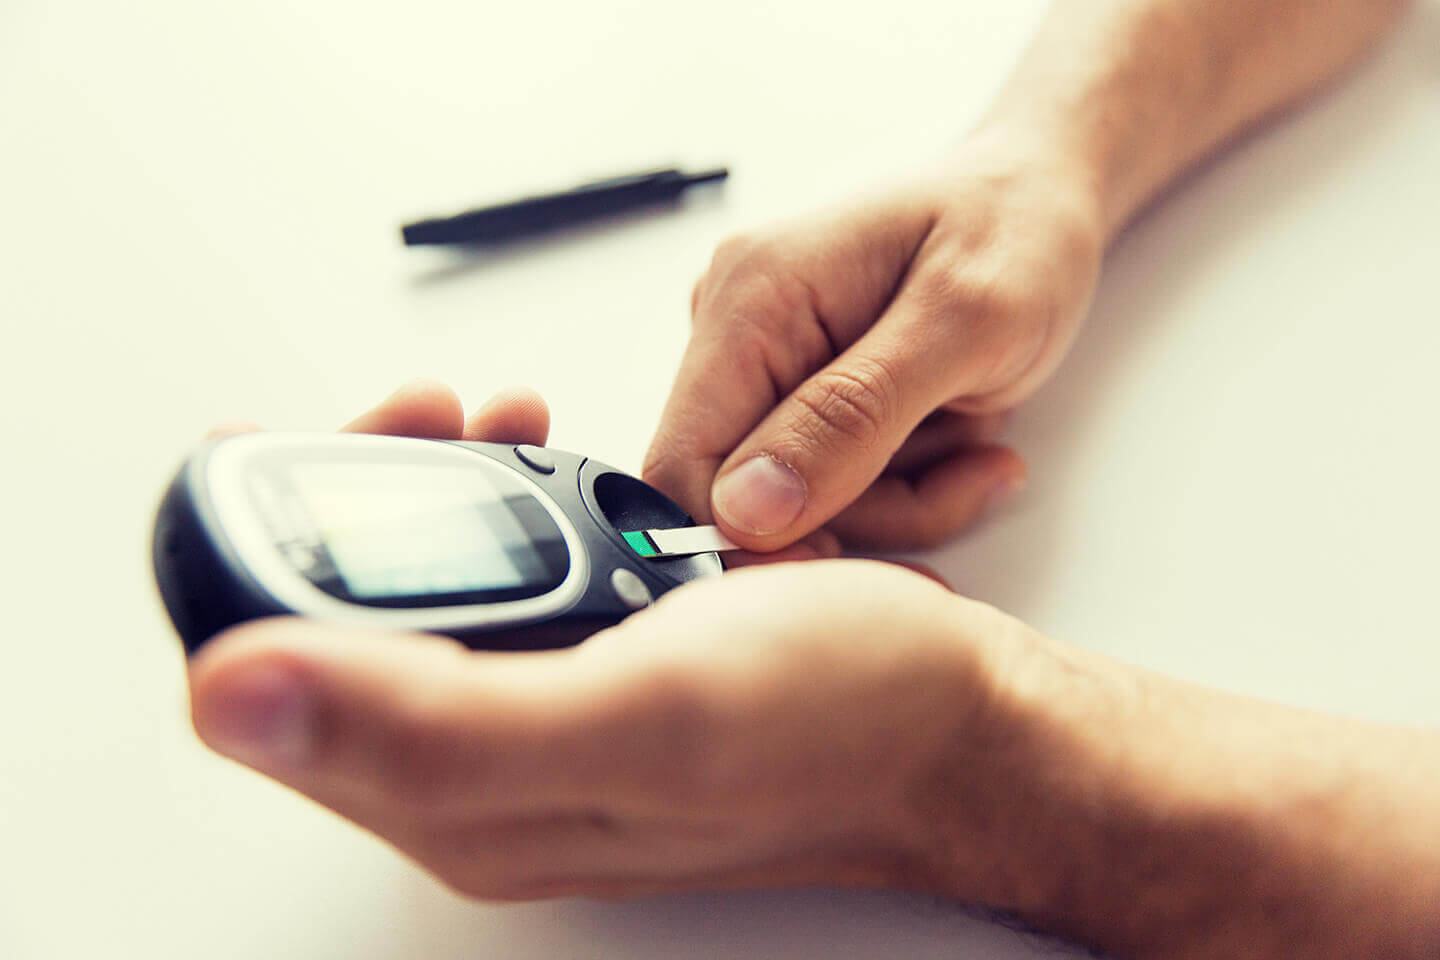 Person holding blood sugar monitoring device